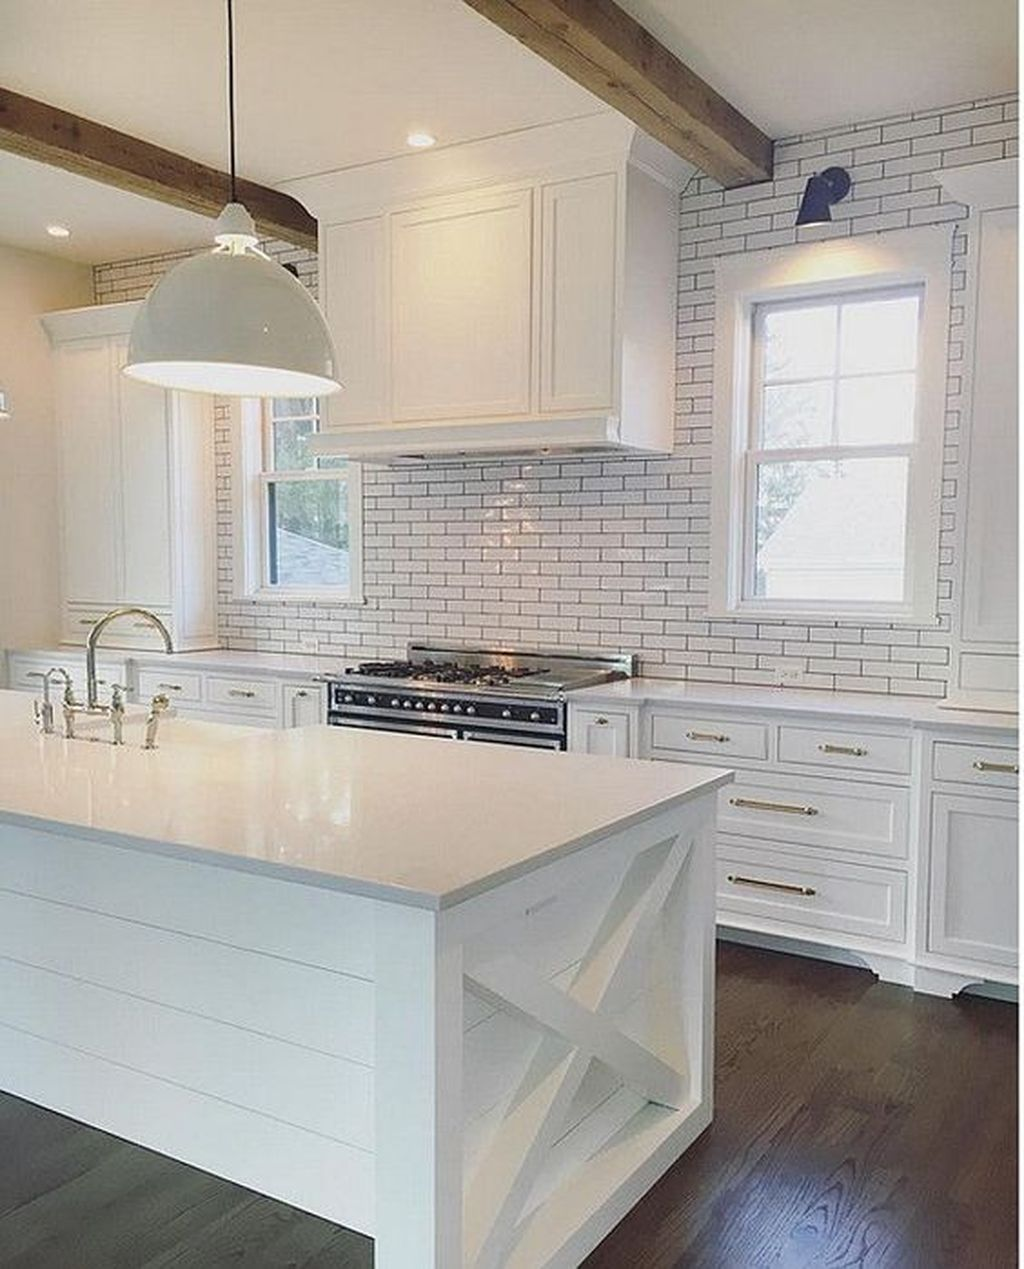 40 Popular Modern Farmhouse Kitchen Backsplash Ideas